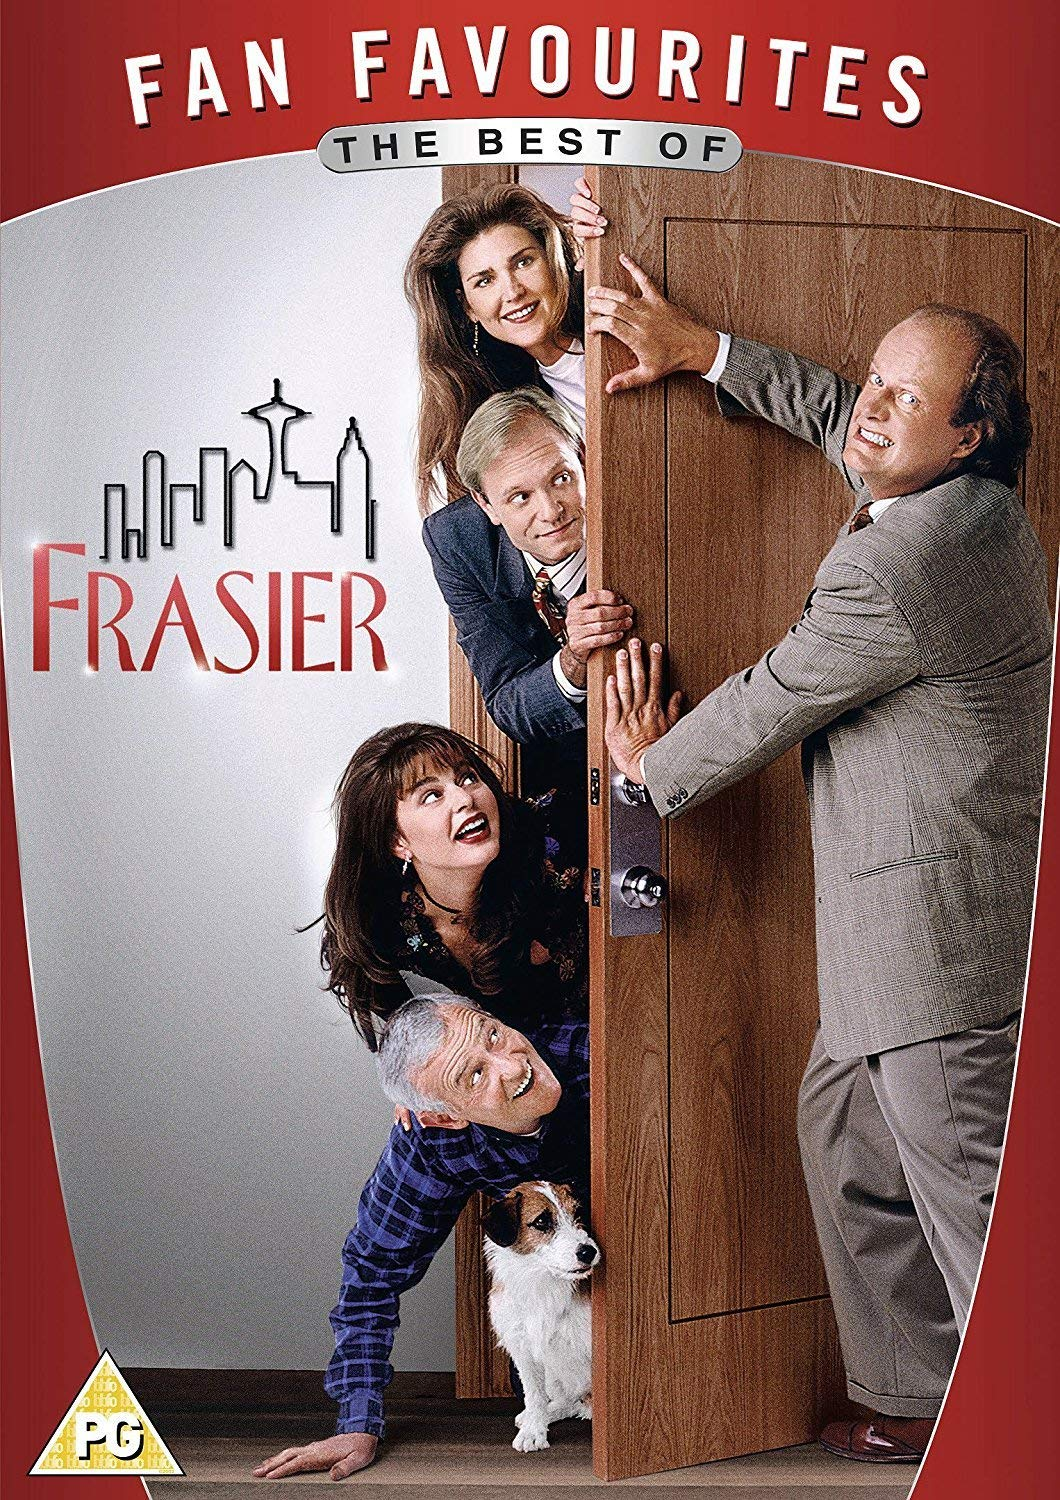 The Best Of Frasier Fan Favourites (DVD)